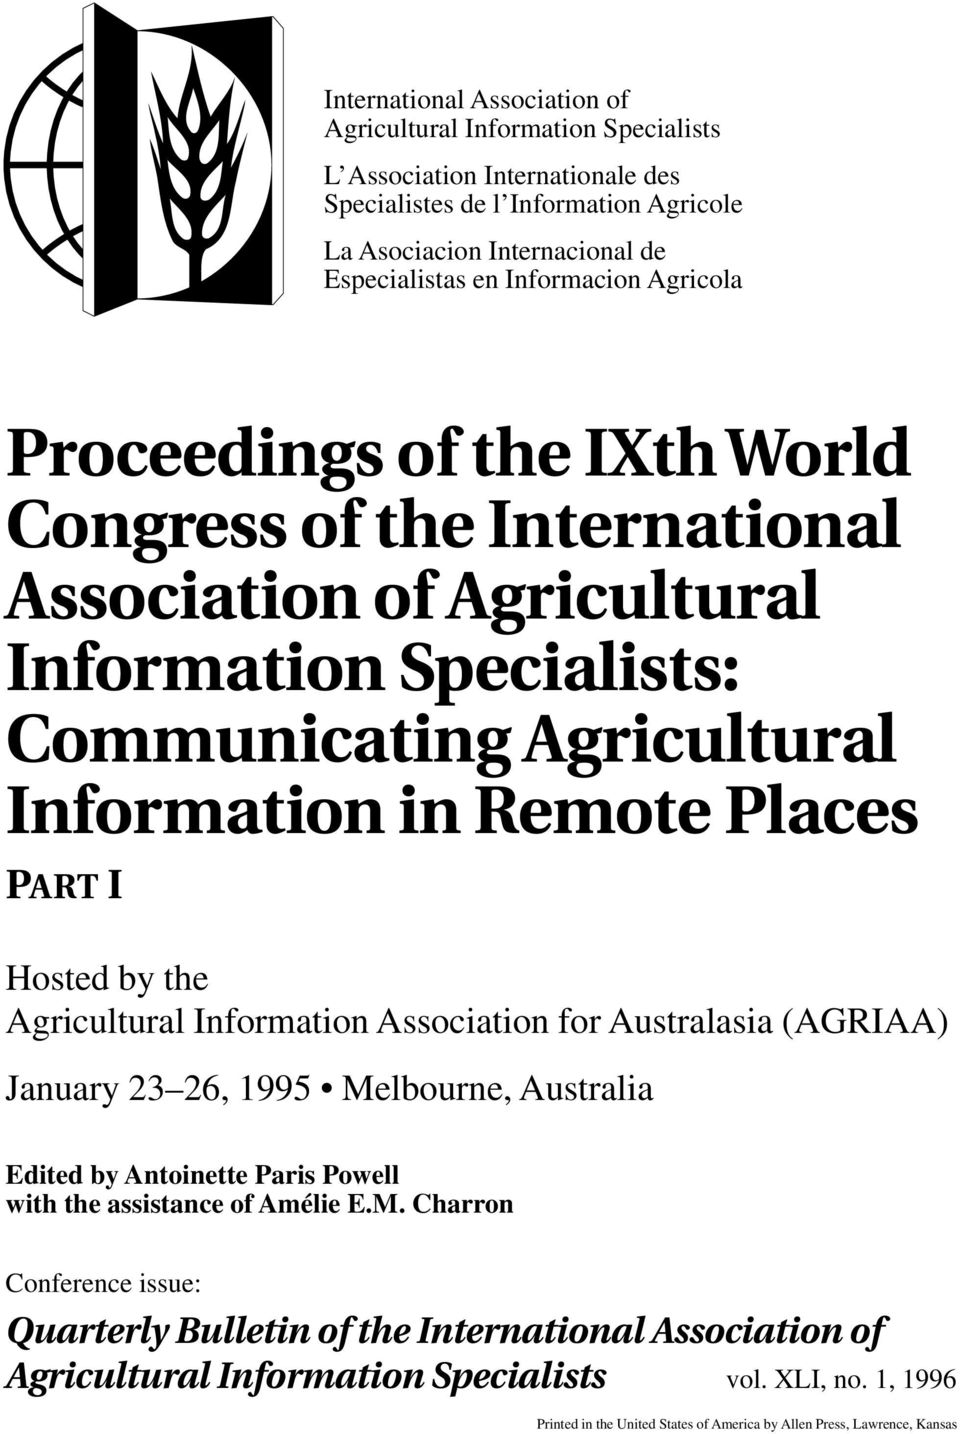 I Hosted by the Agricultural Information Association for Australasia (AGRIAA) January 23 26, 1995 Me